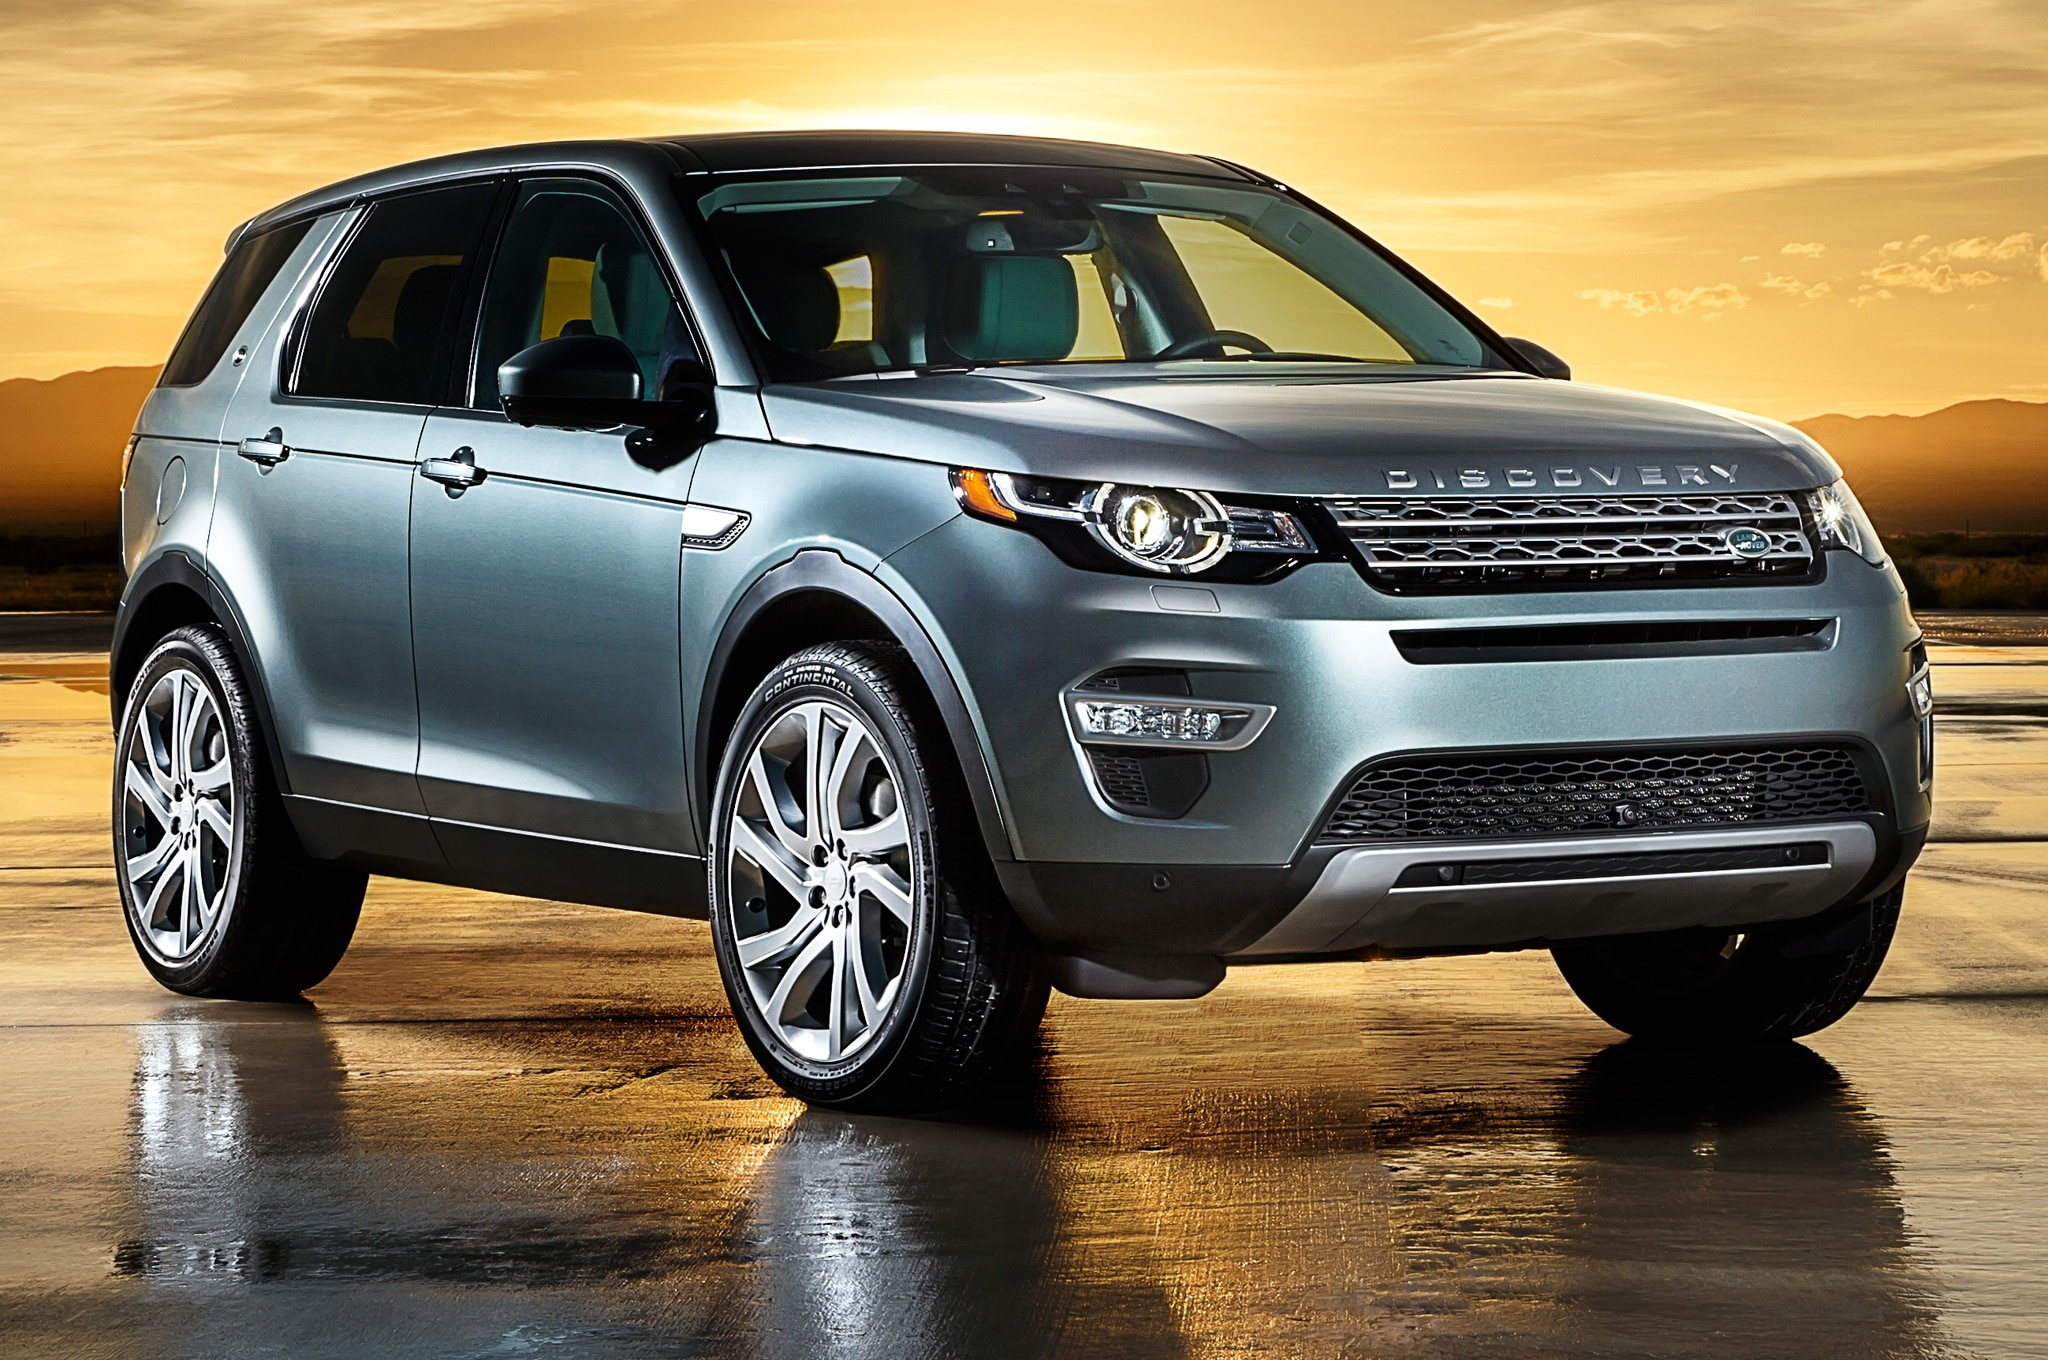 2015 land rover discovery sport revealed priced at 38 290. Black Bedroom Furniture Sets. Home Design Ideas